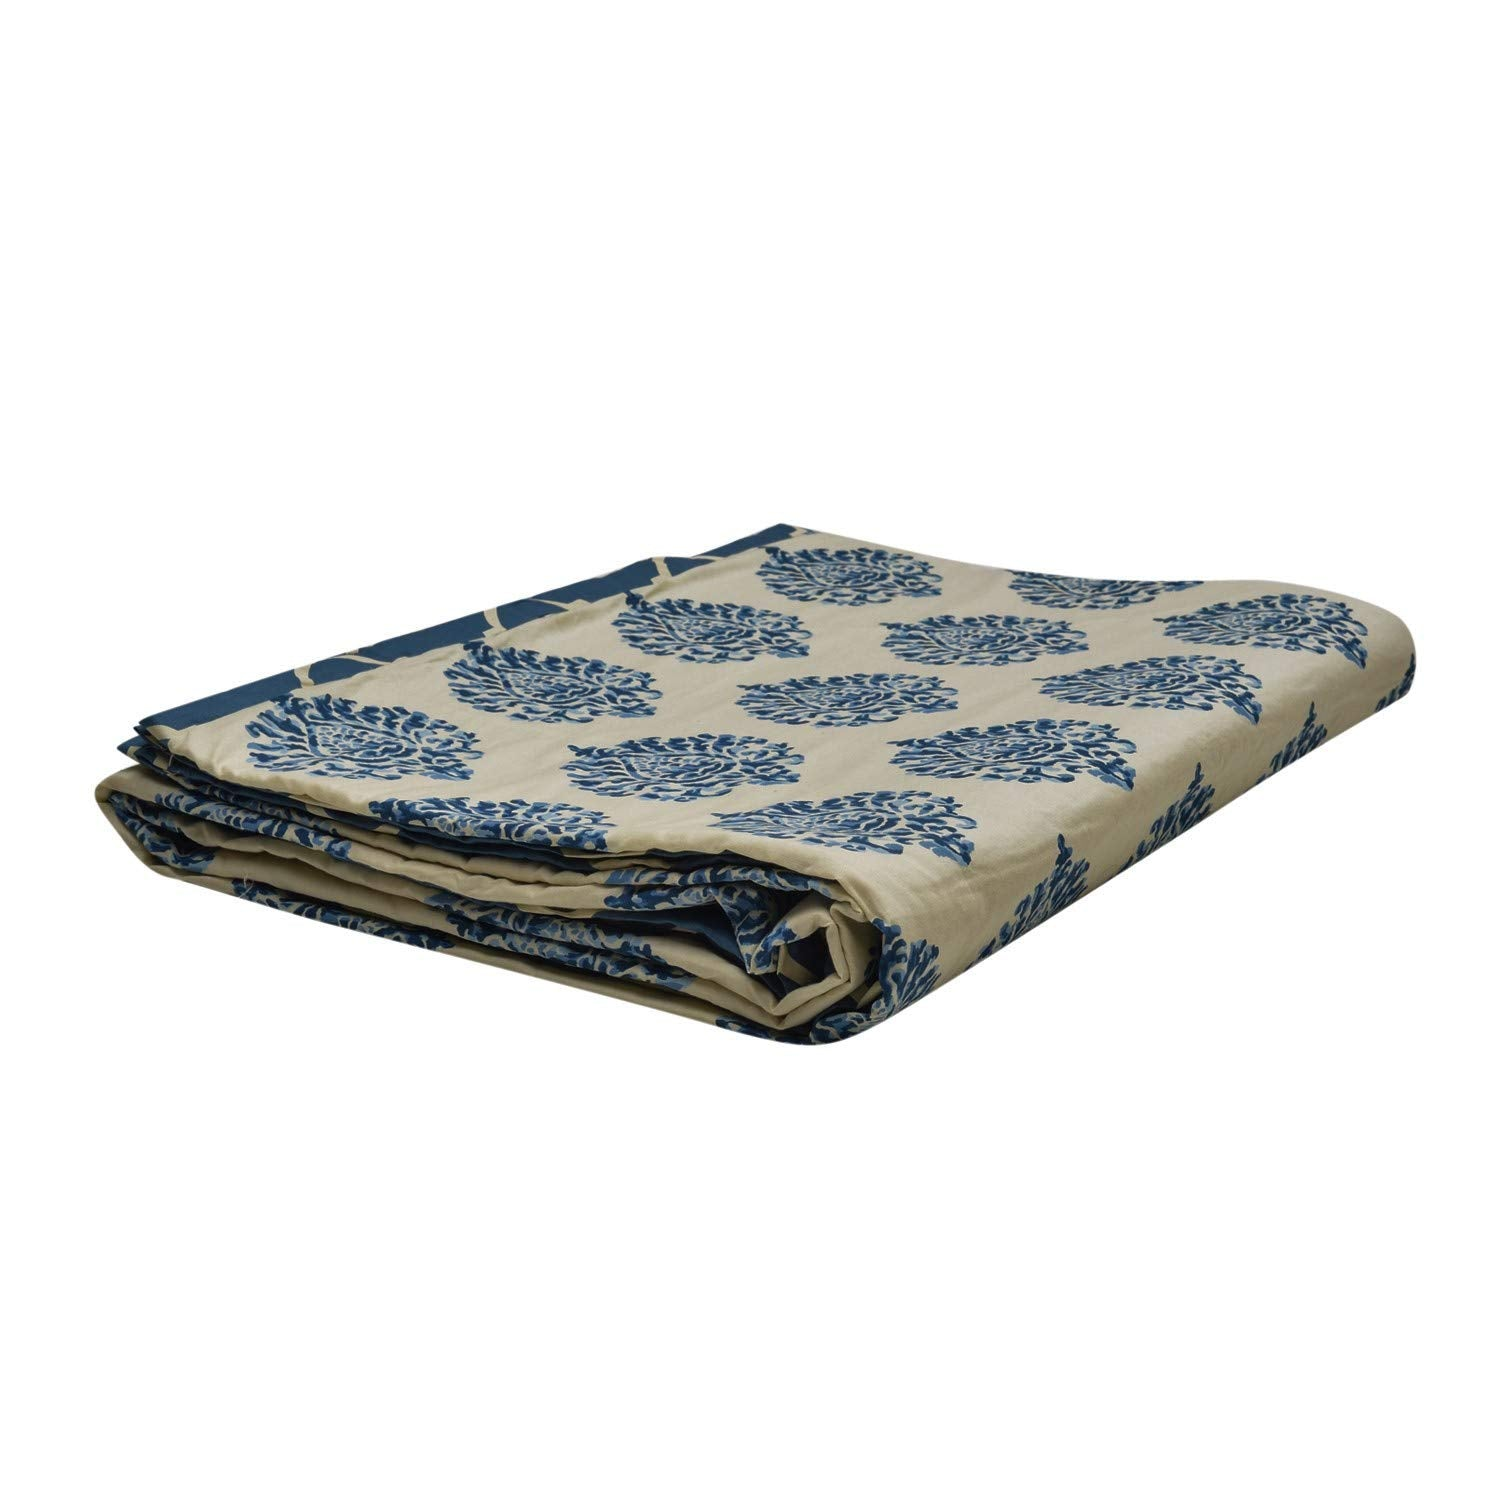 Trance Home Linen Cotton Single Dohar - Damask Blue